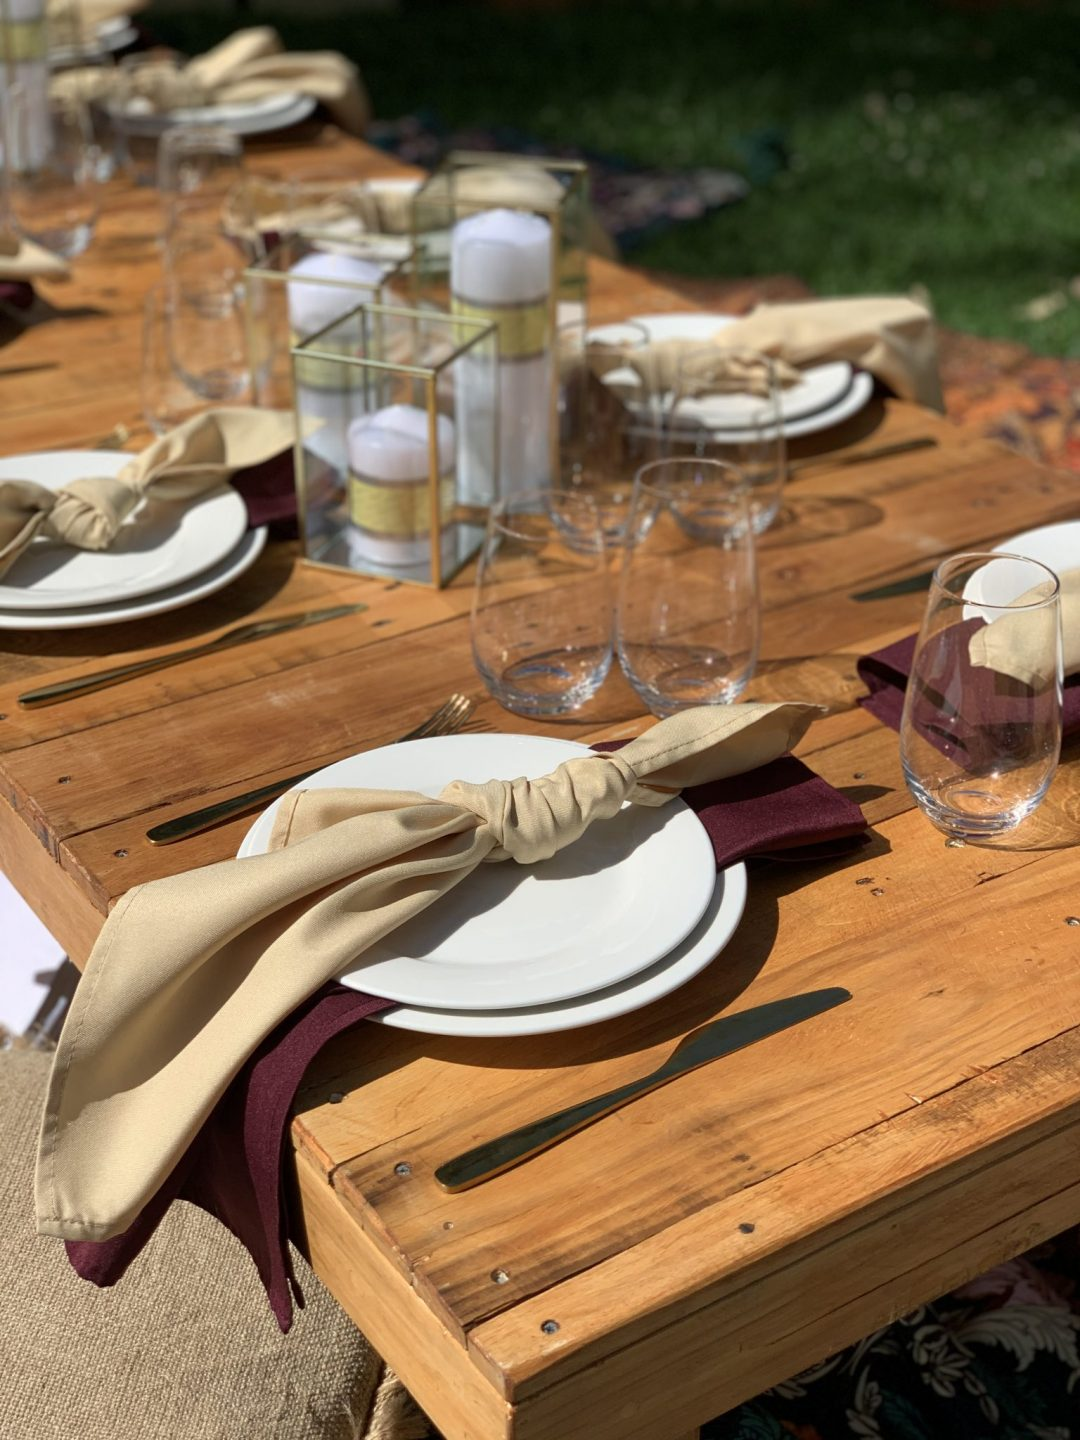 close-up-on-rustic-pallet-picnic-table-with-champagne-and-burgundy-linen-napkins-AFC-crockery-and-standard-glassware